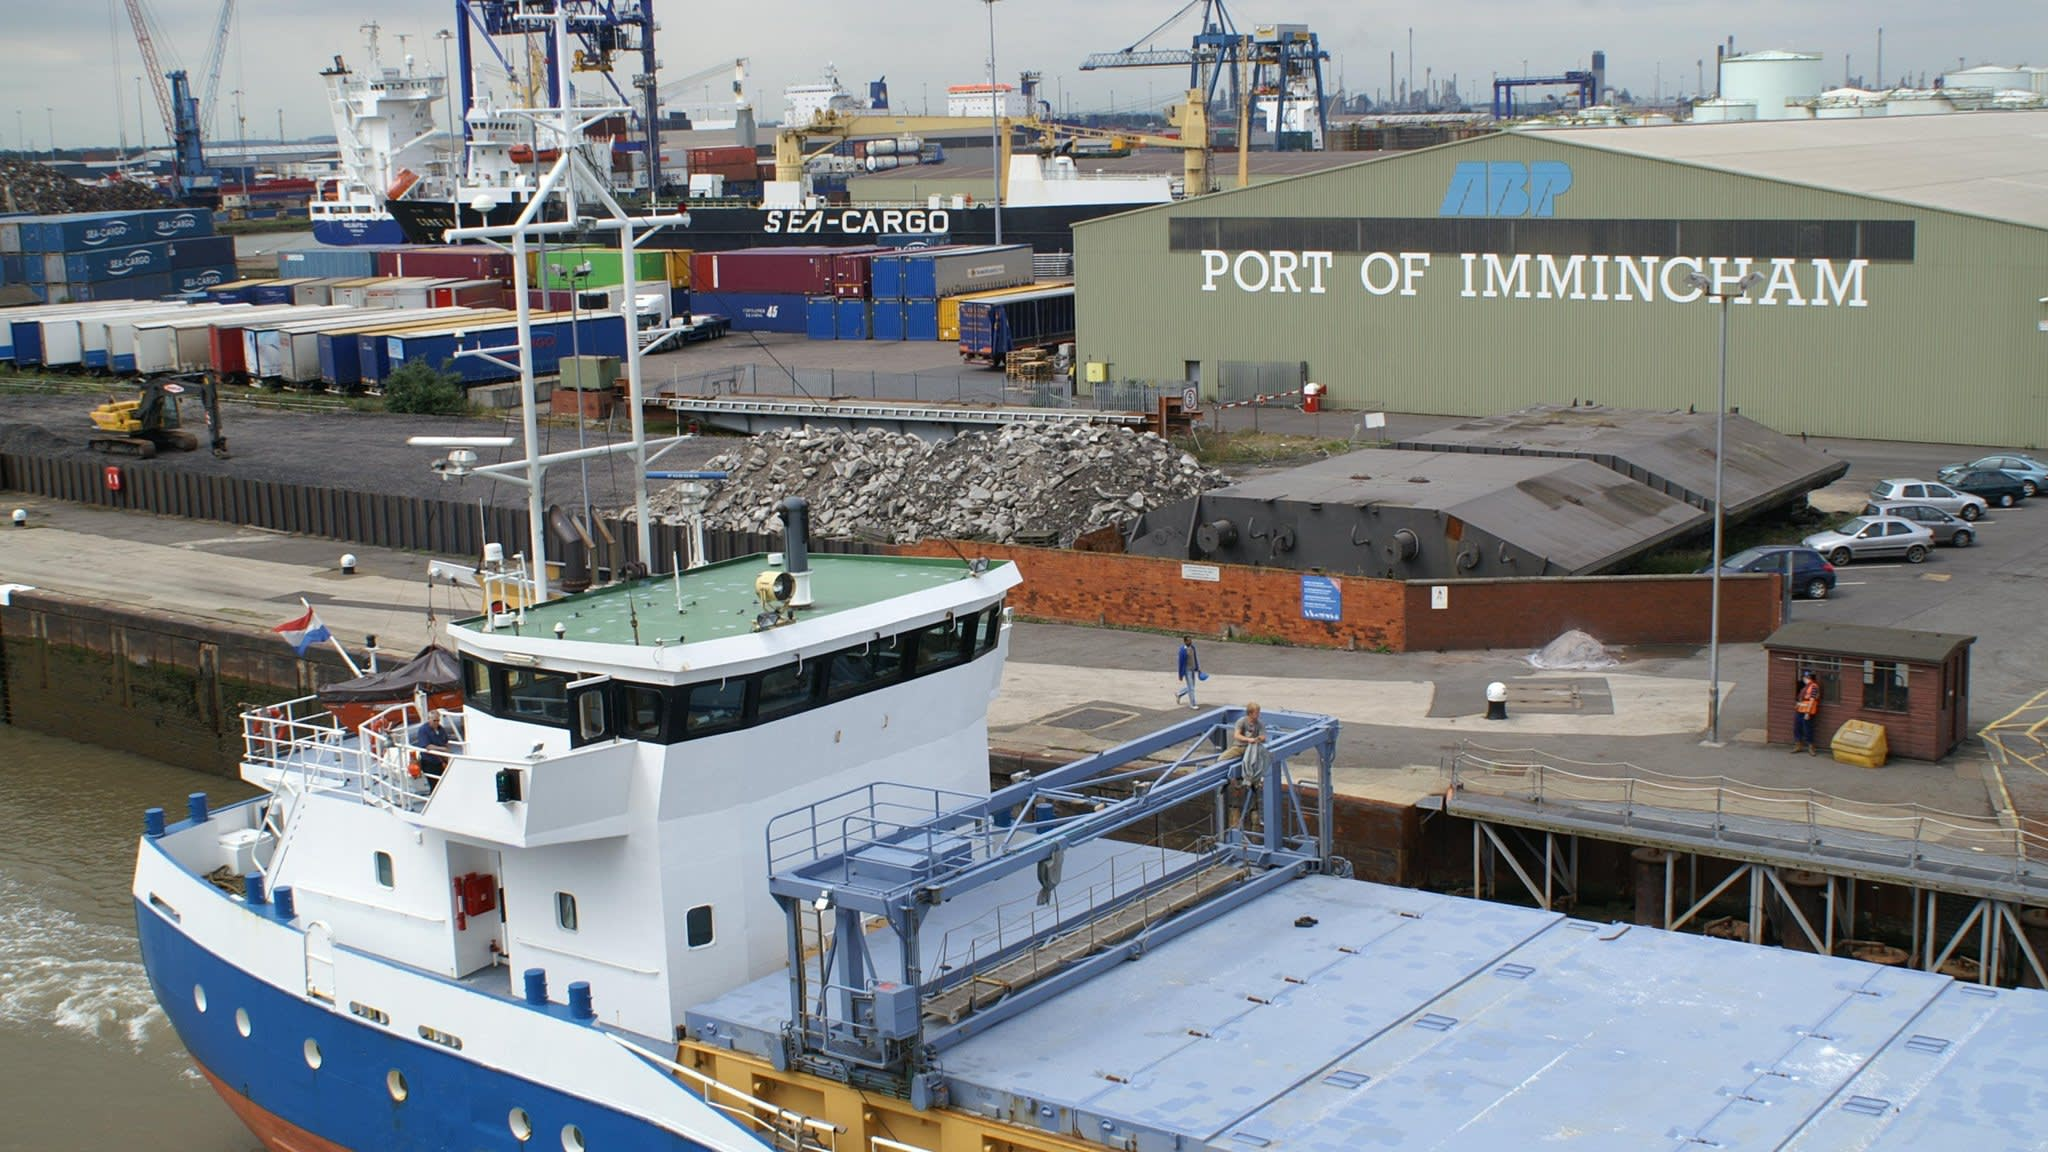 Northern UK ports prepare for freight boost after Brexit